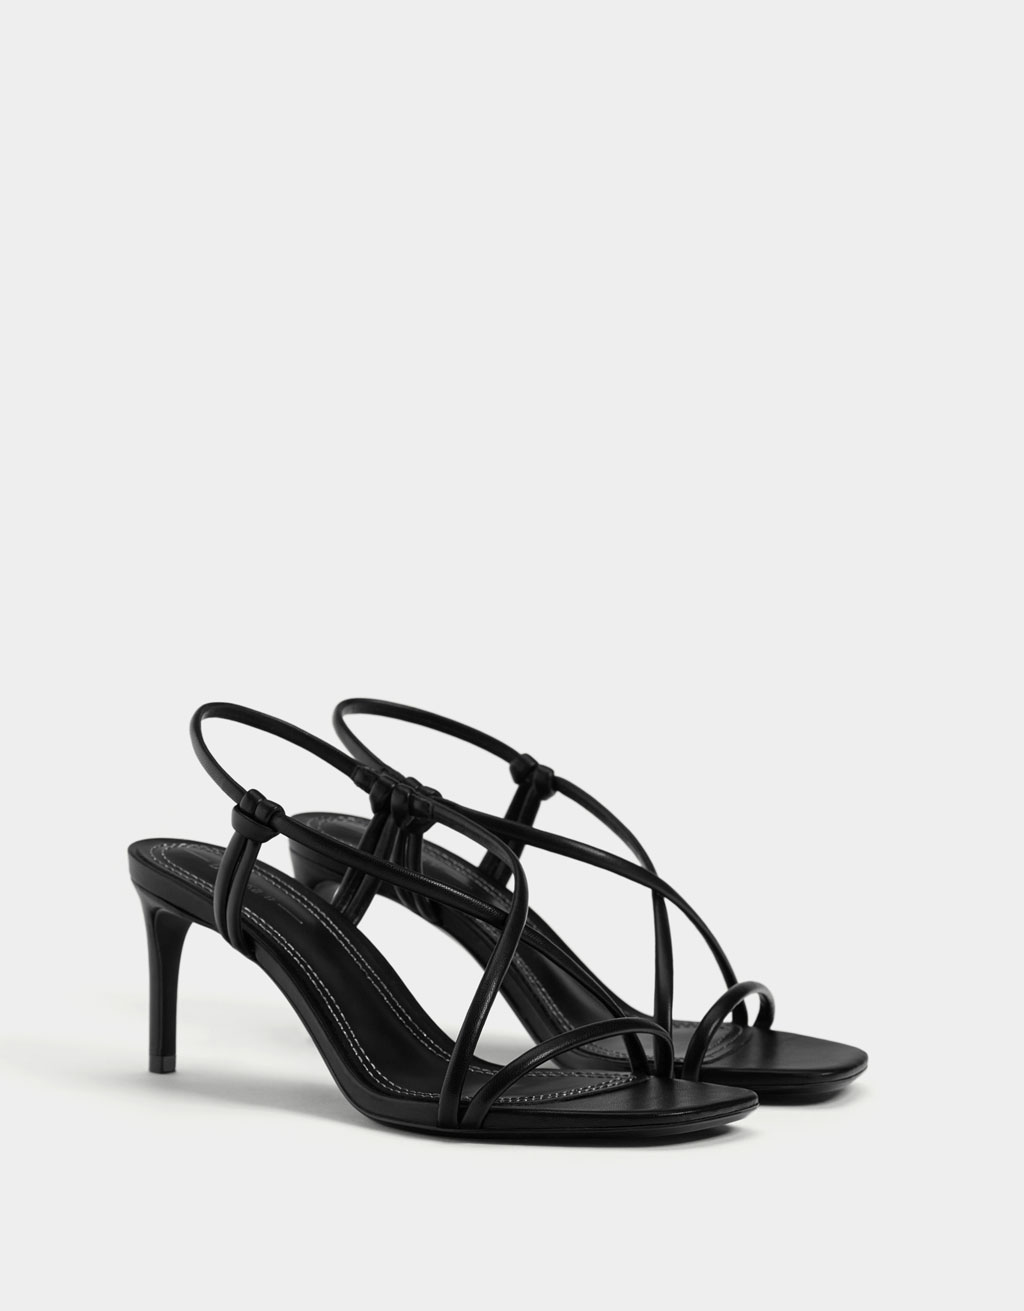 Heeled sandals with tubular straps